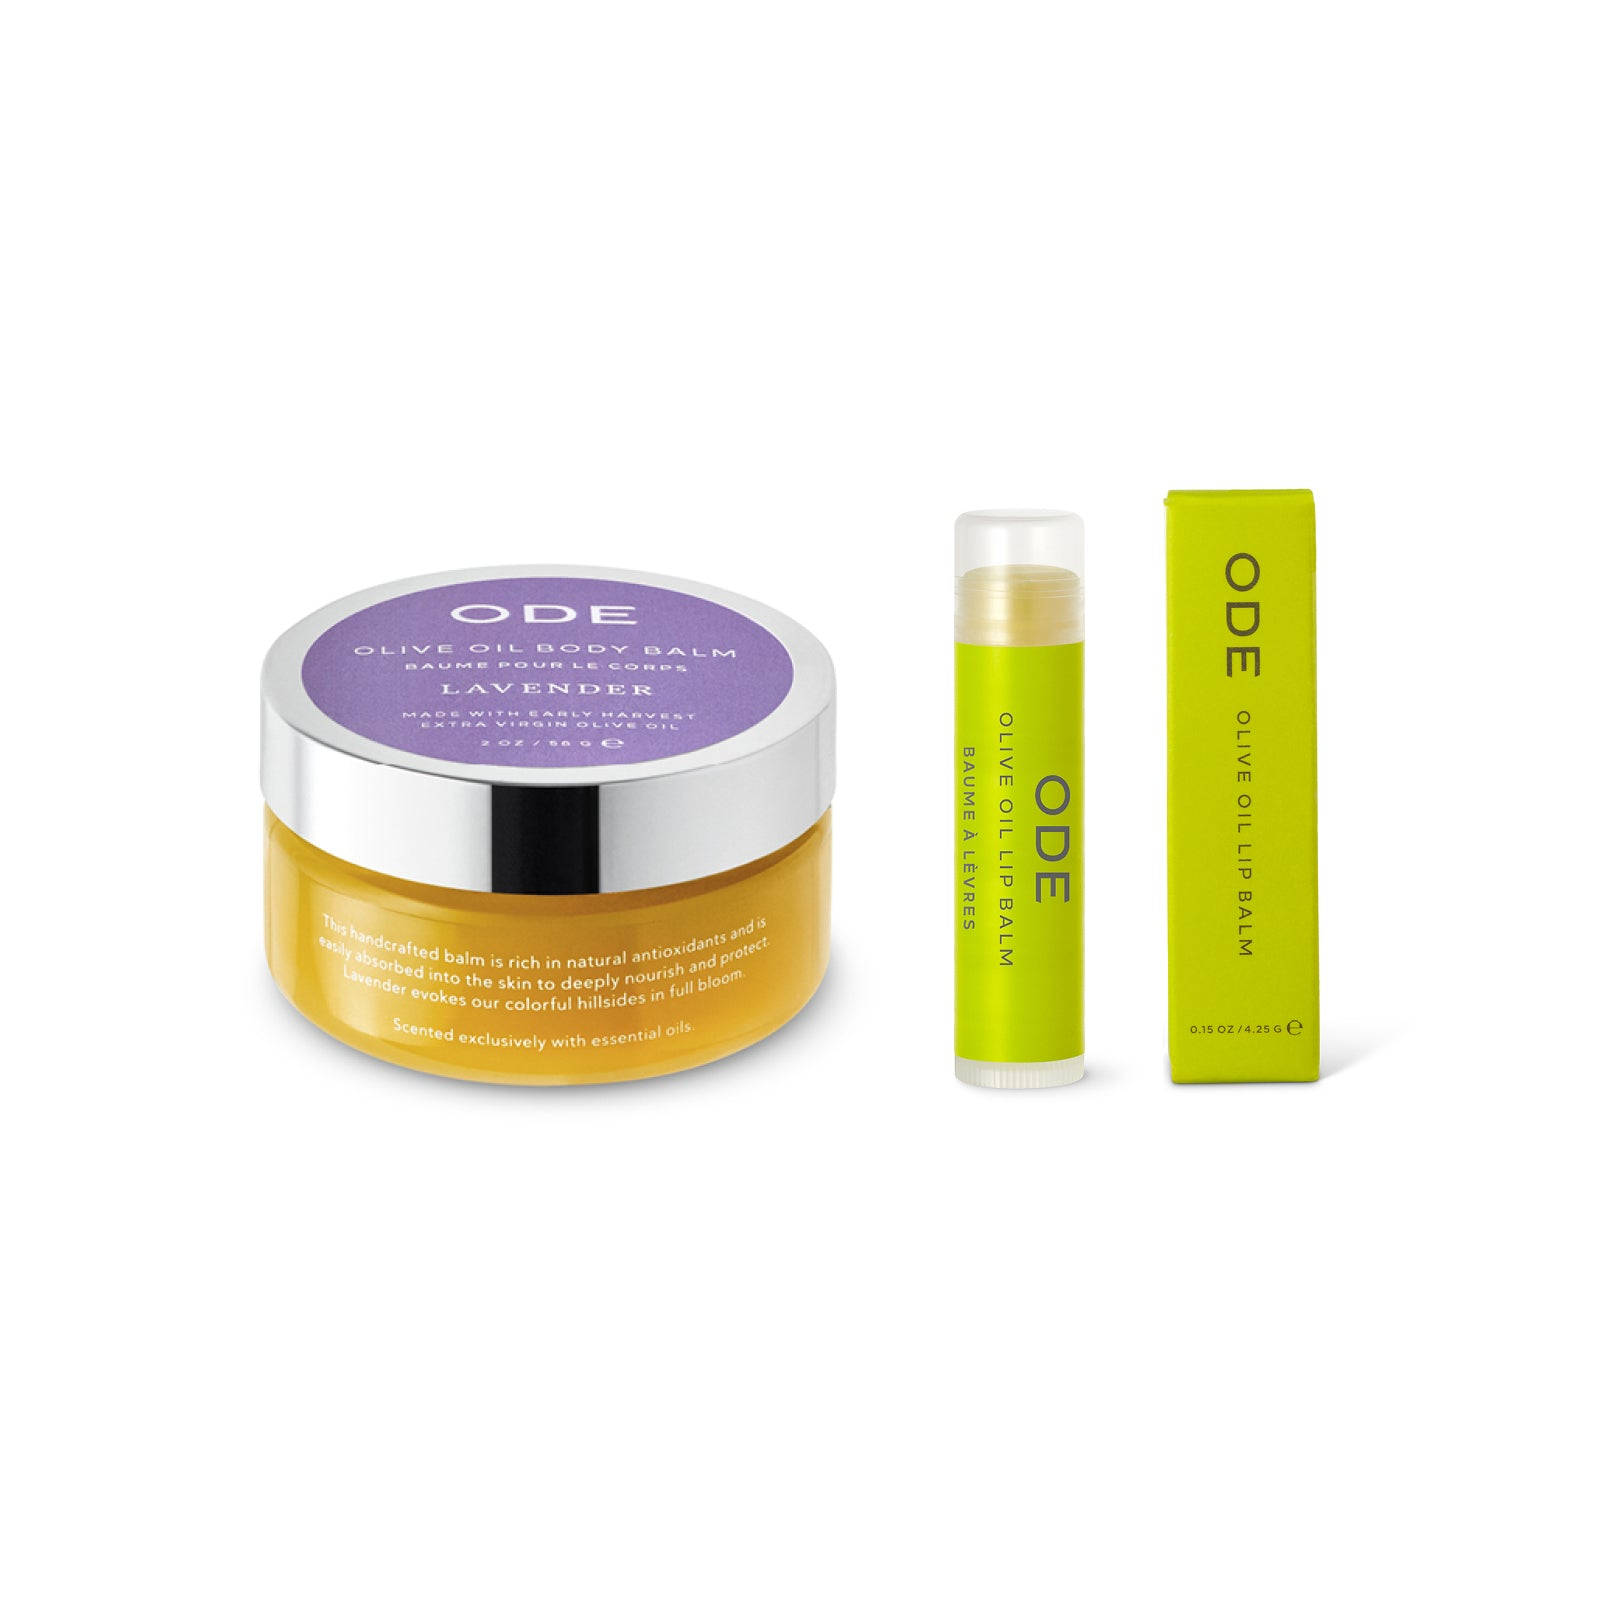 lavander olive oil body balm and lip balm wrapped in cello